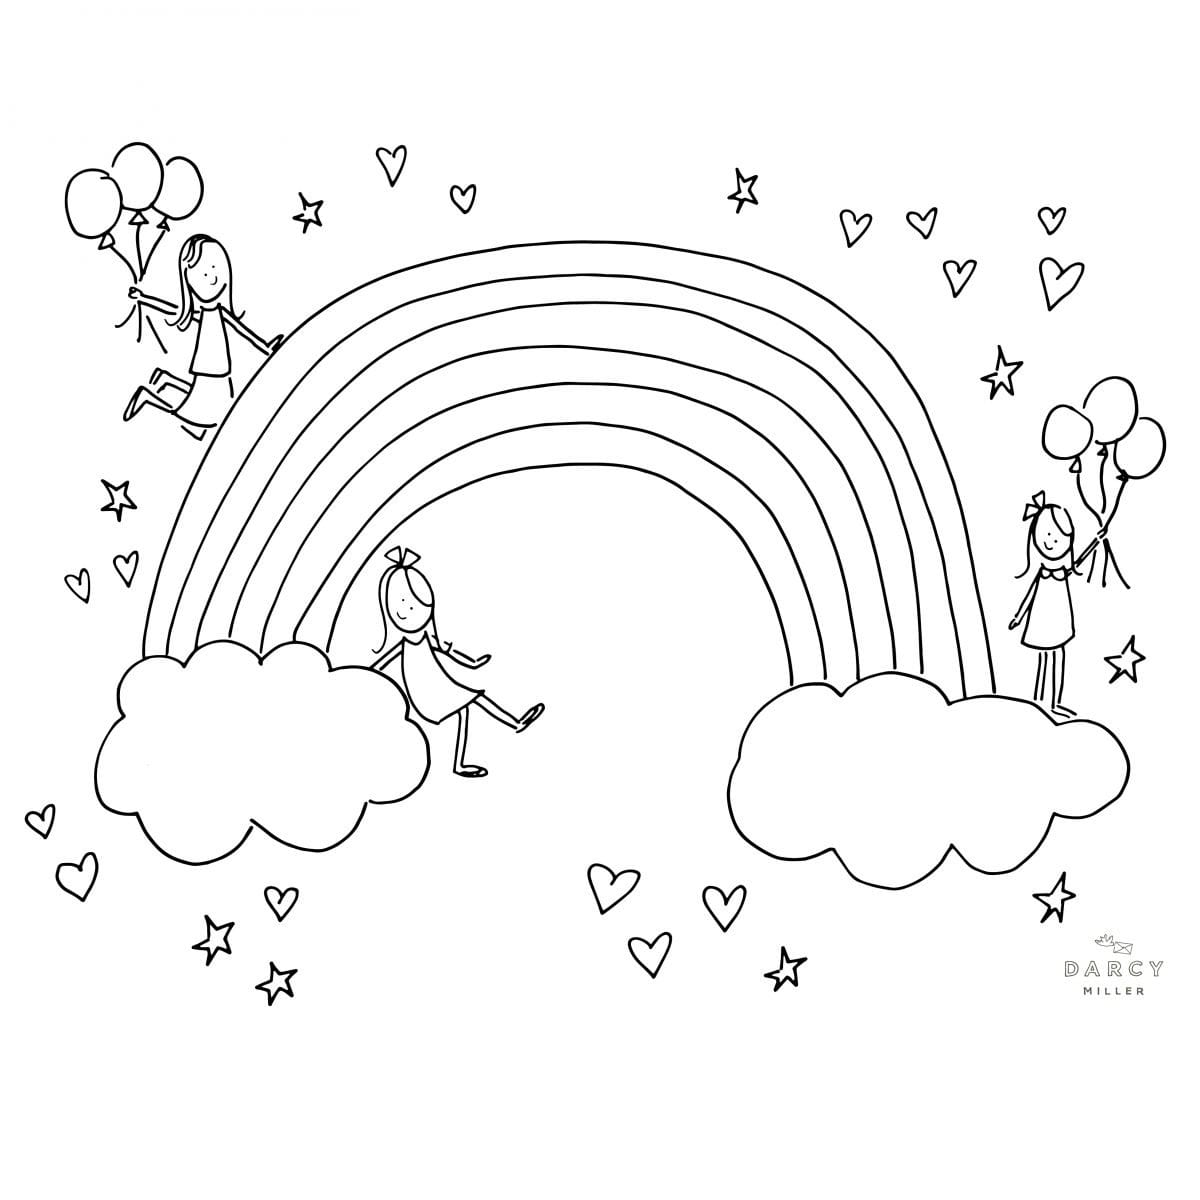 rainbow coloring pages free printable rainbow coloring pages for kids rainbow coloring pages 1 2